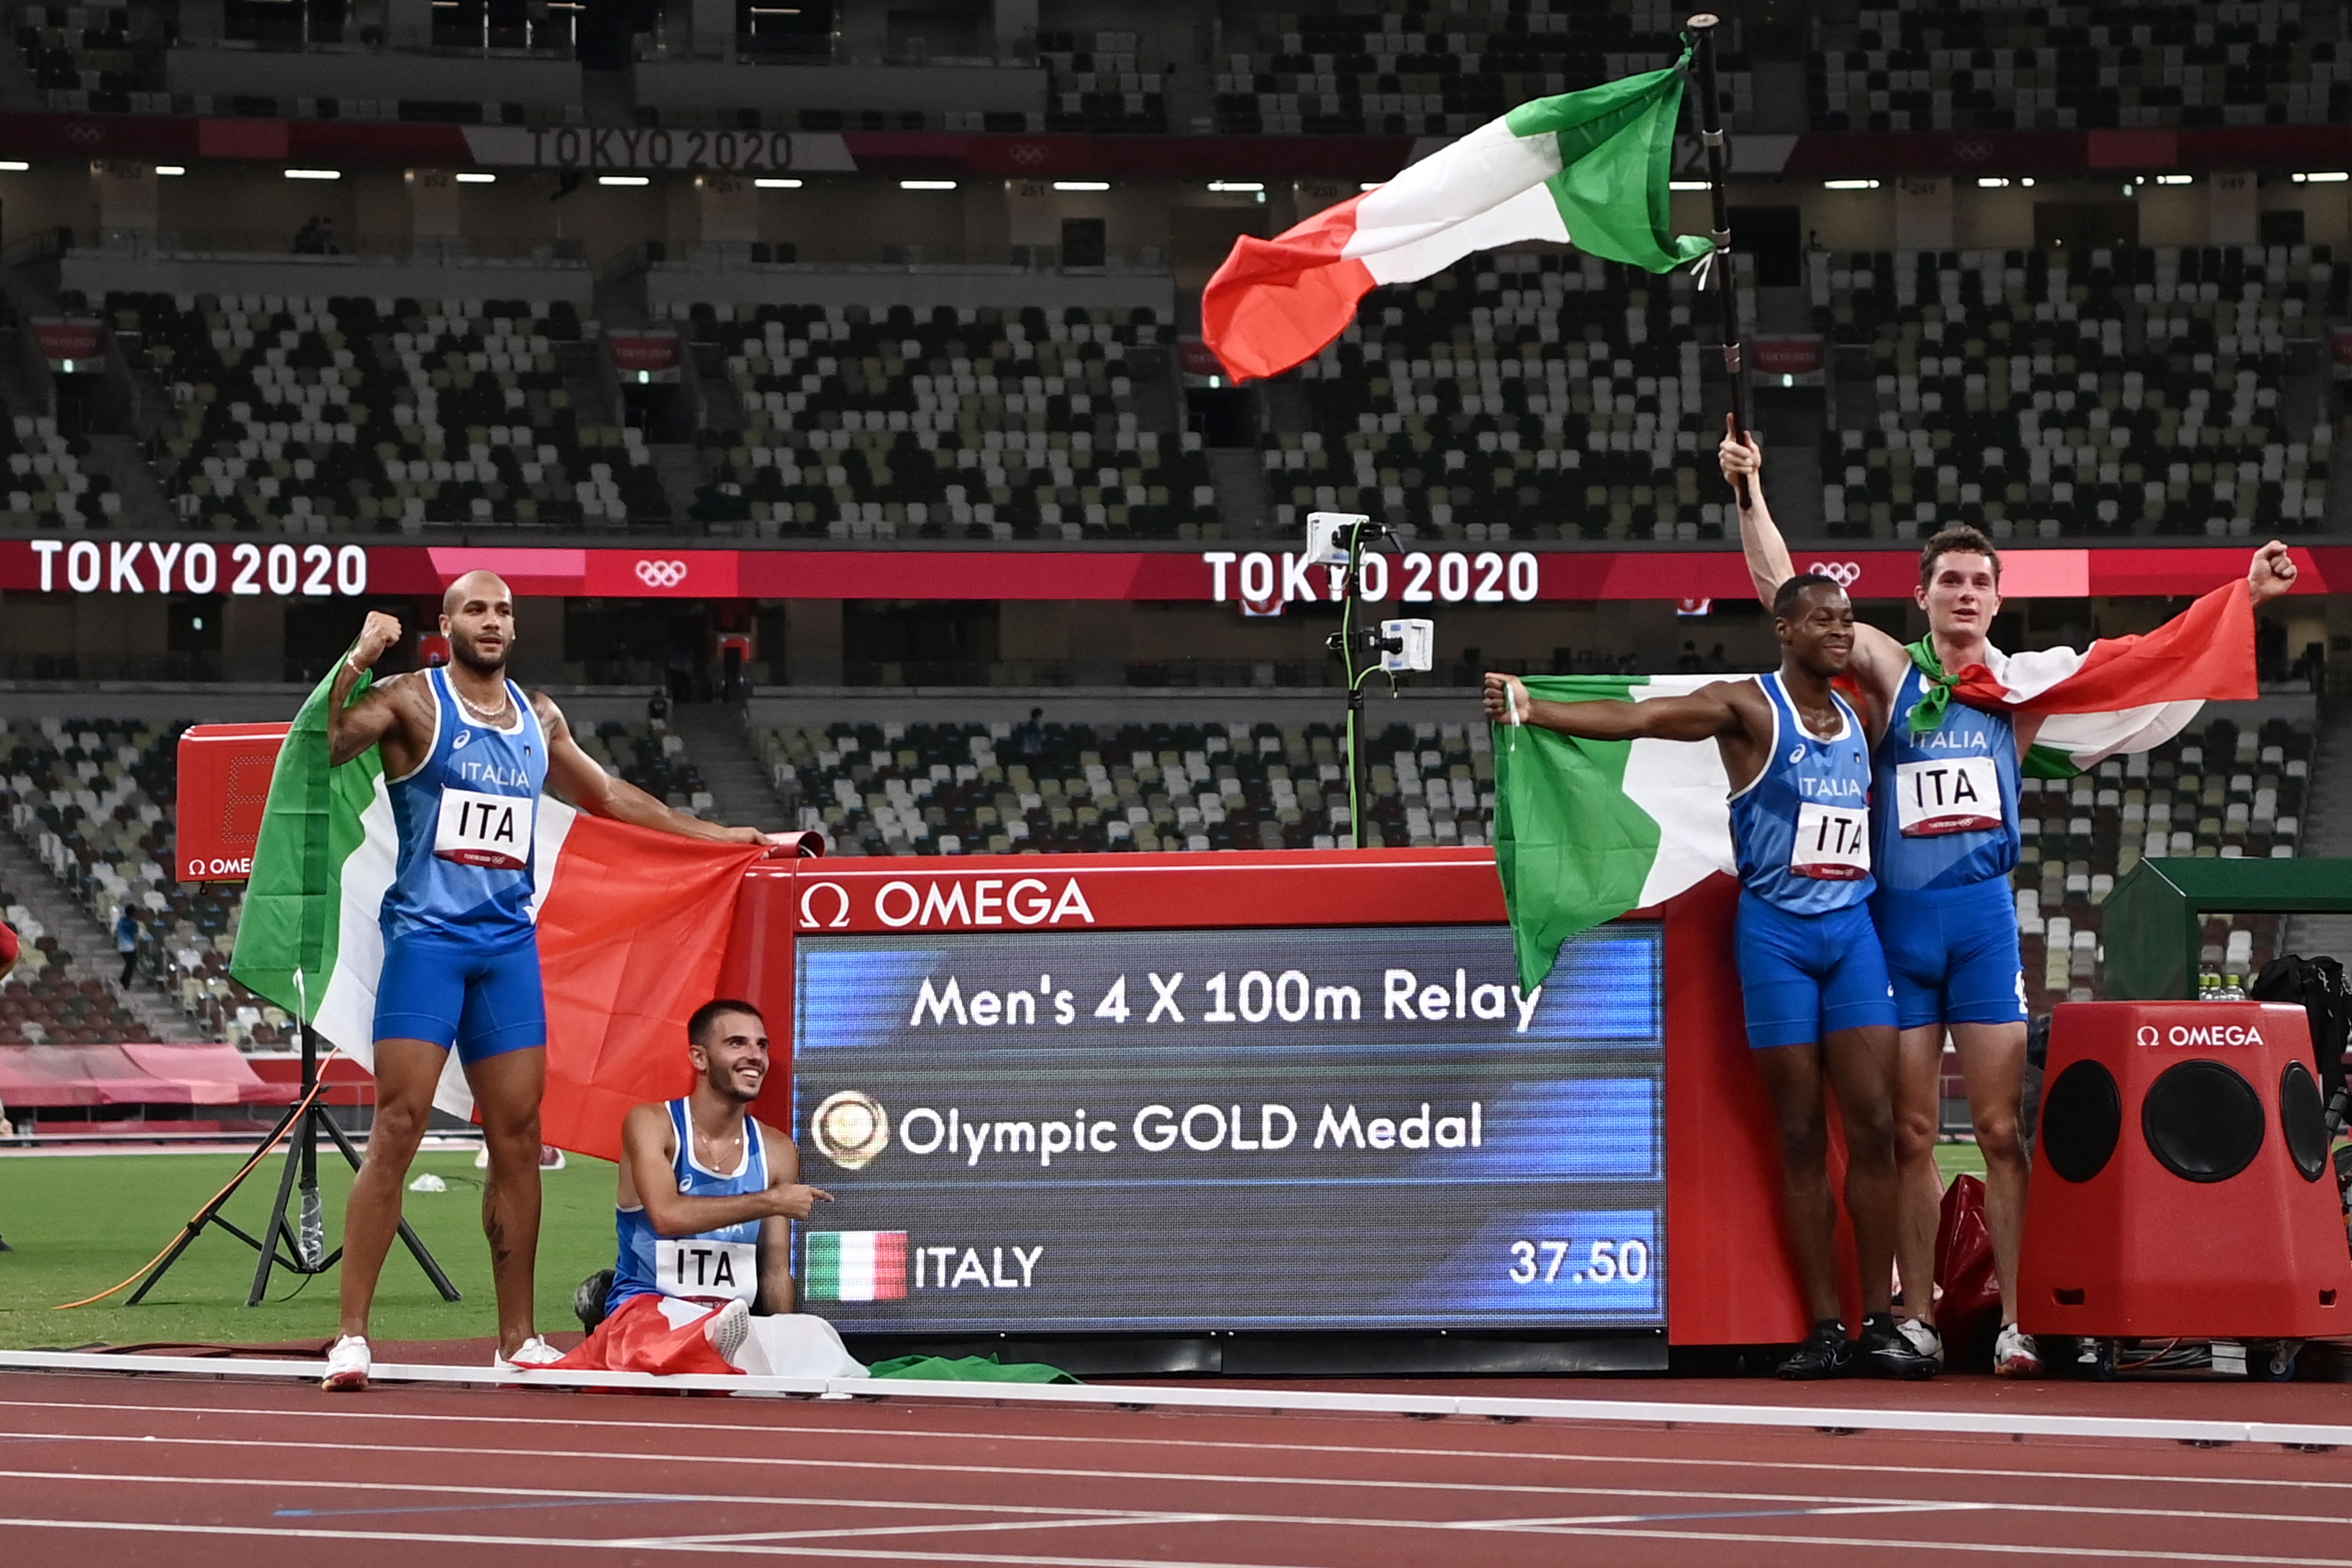 Team Italy celebrate after the men's 4x100m relay final during the Tokyo 2020 Olympic Games at the Olympic Stadium in Tokyo on August 6, 2021.